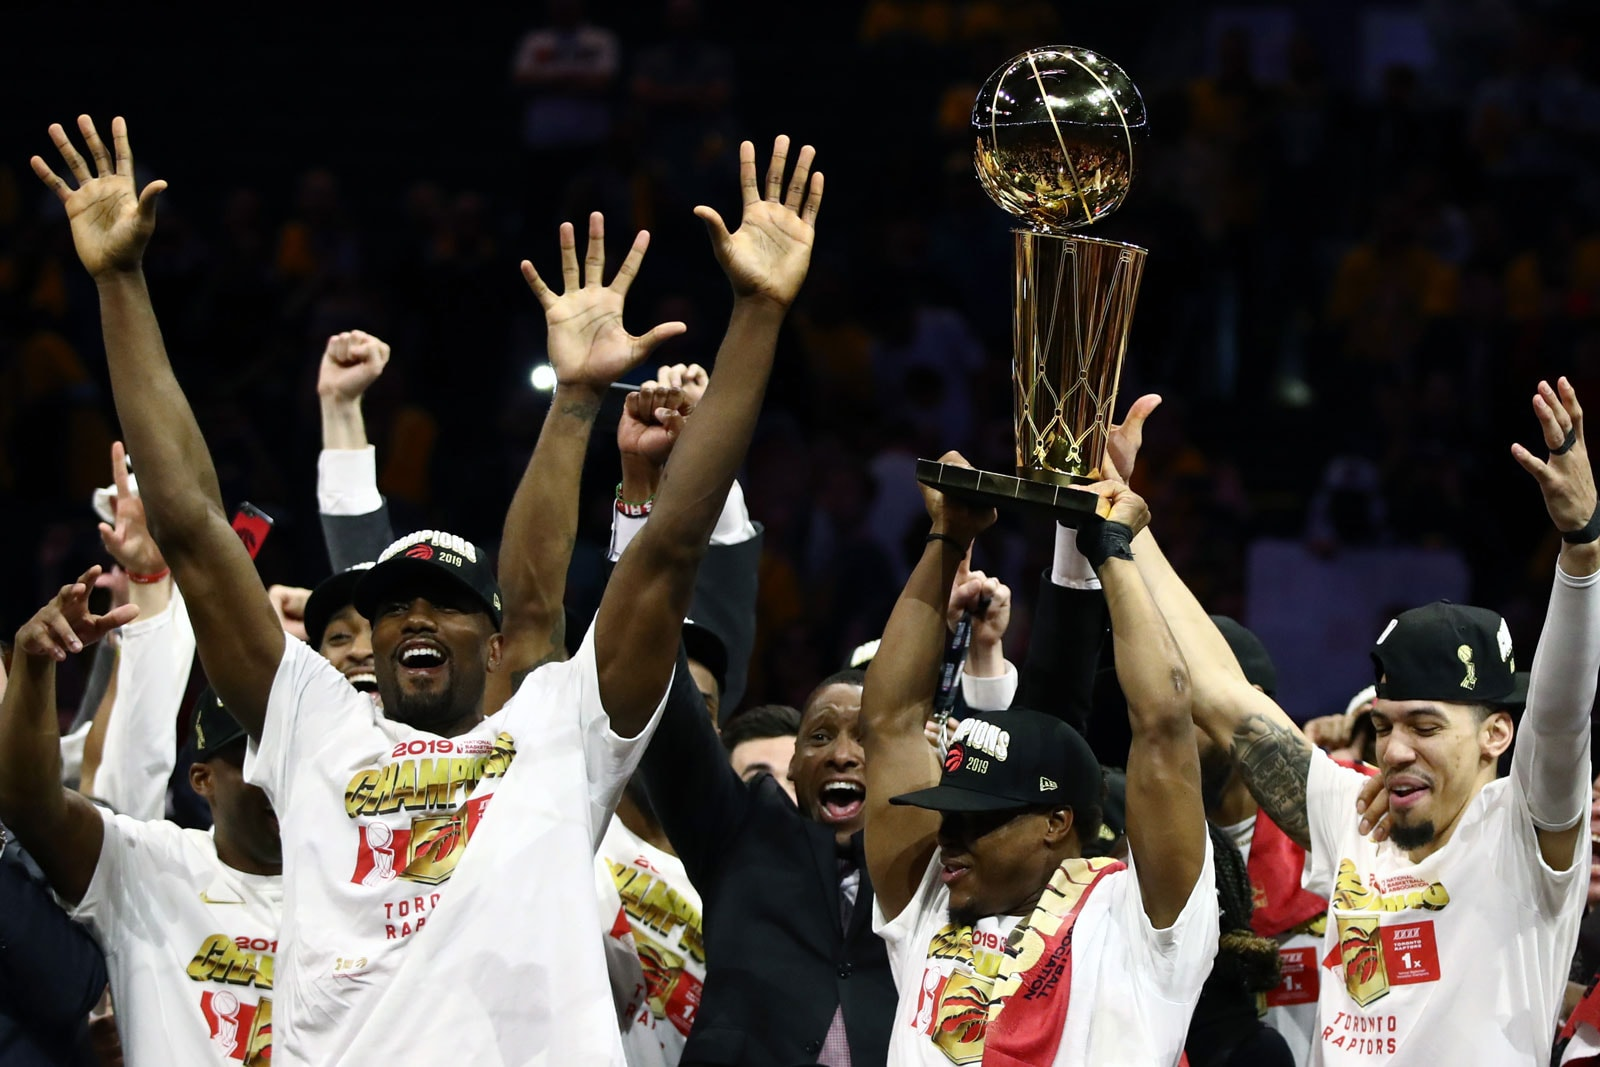 The Toronto Raptors celebrate with the Larry O'Brien Championship Trophy after their team defeated the Golden State Warriors to win Game Six of the 2019 NBA Finals at ORACLE Arena on June 13, 2019 in Oakland, California.